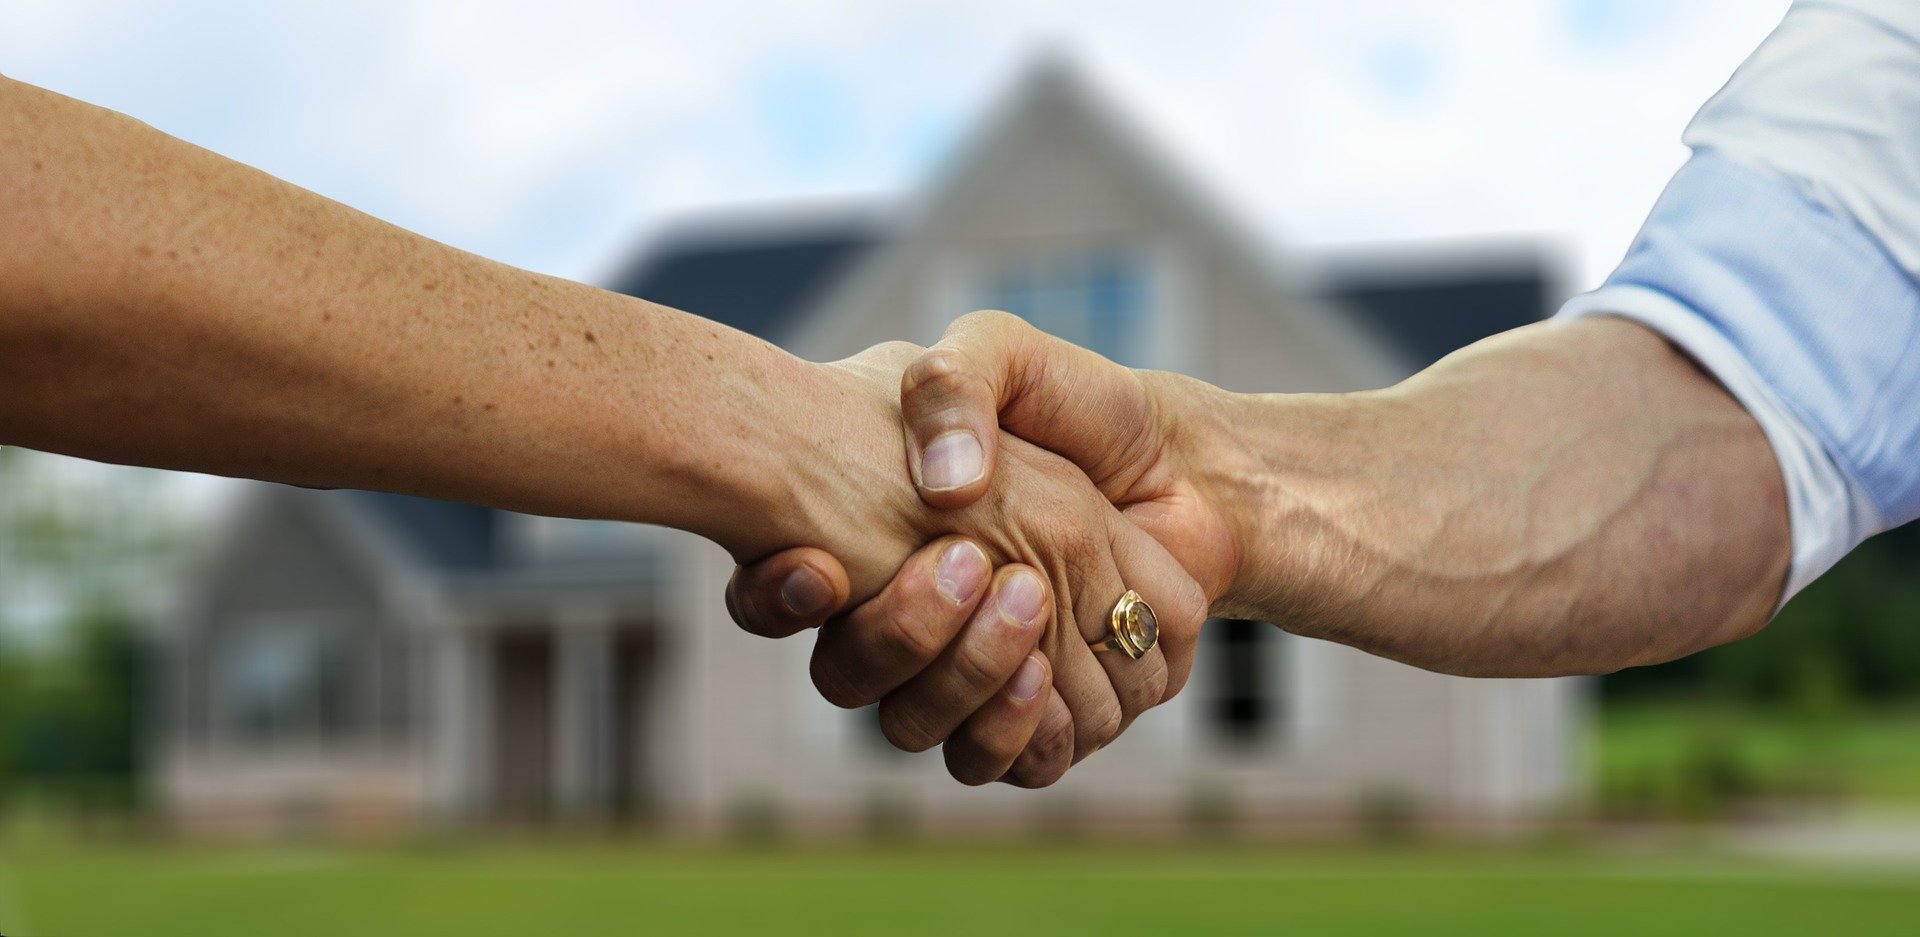 How To Become A Real Estate Investor?